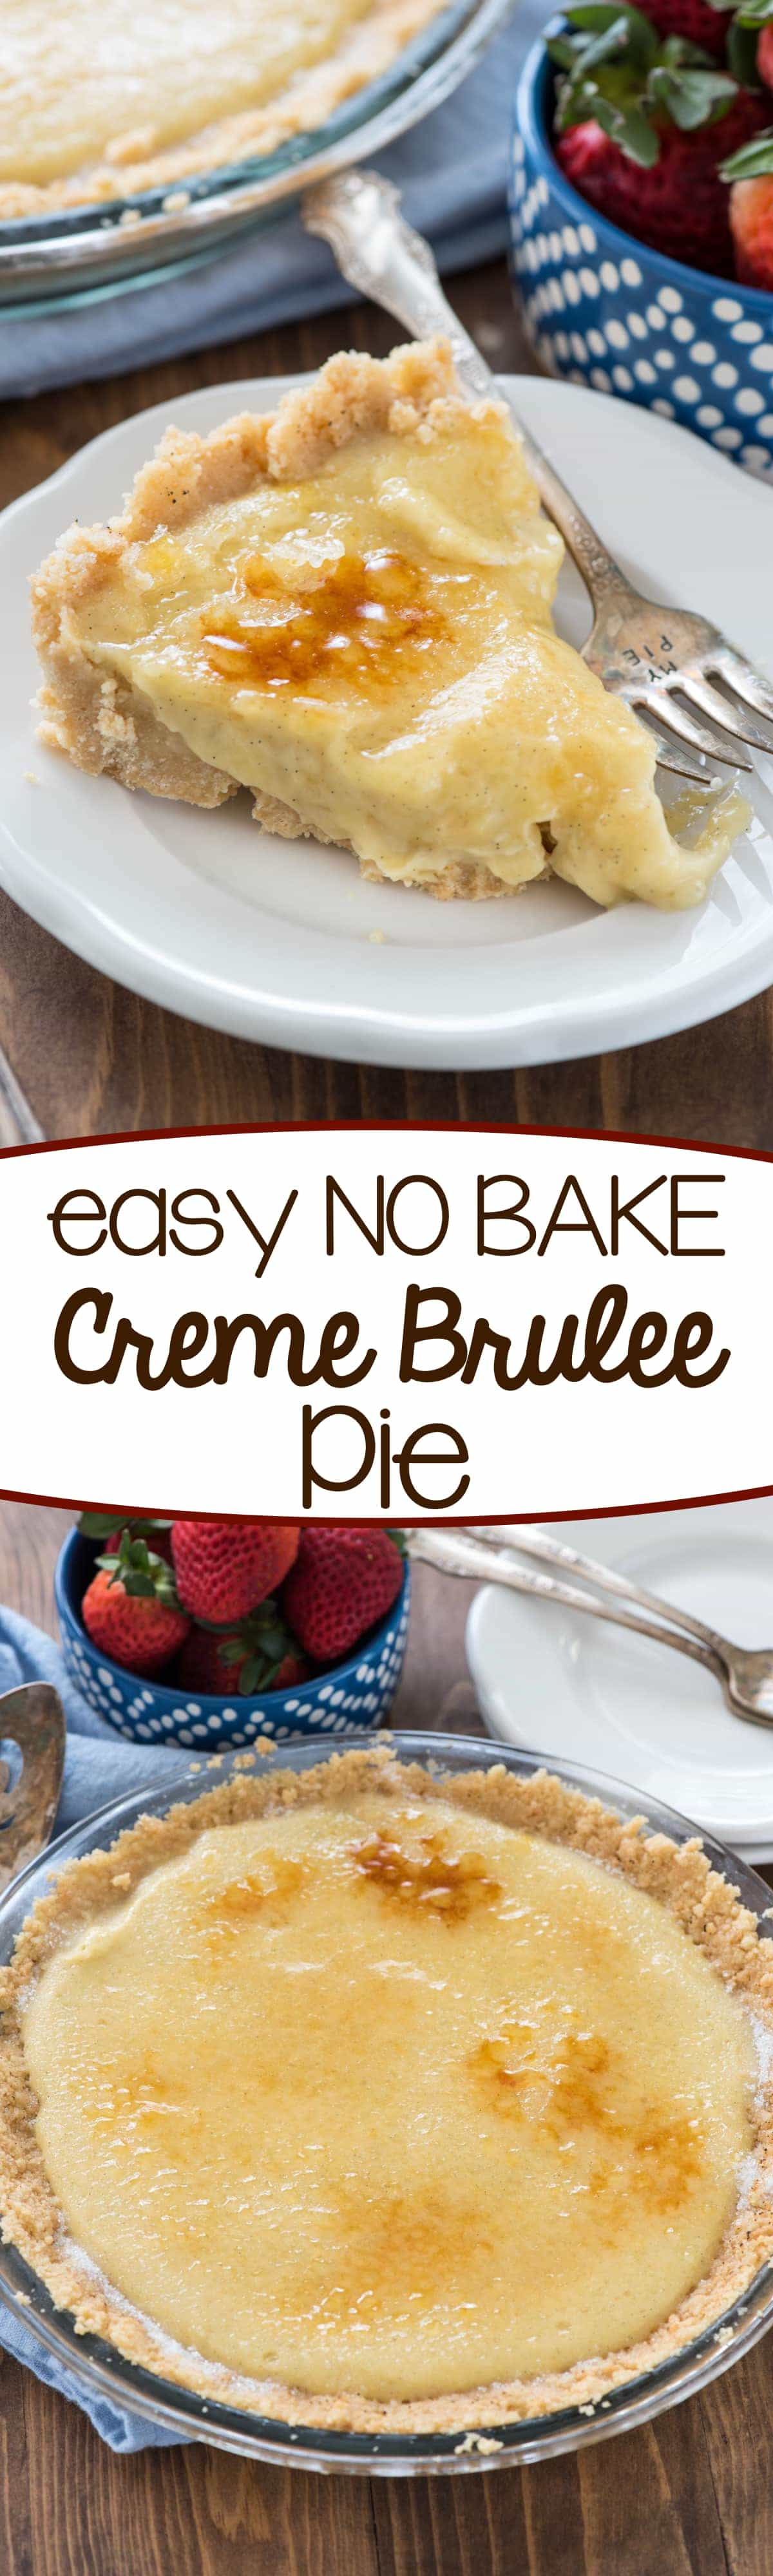 Easy No Bake Creme Brulee Pie - this pie has just a few ingredients and comes together in just minutes for my new favorite creme brulee! No oven or torch needed!